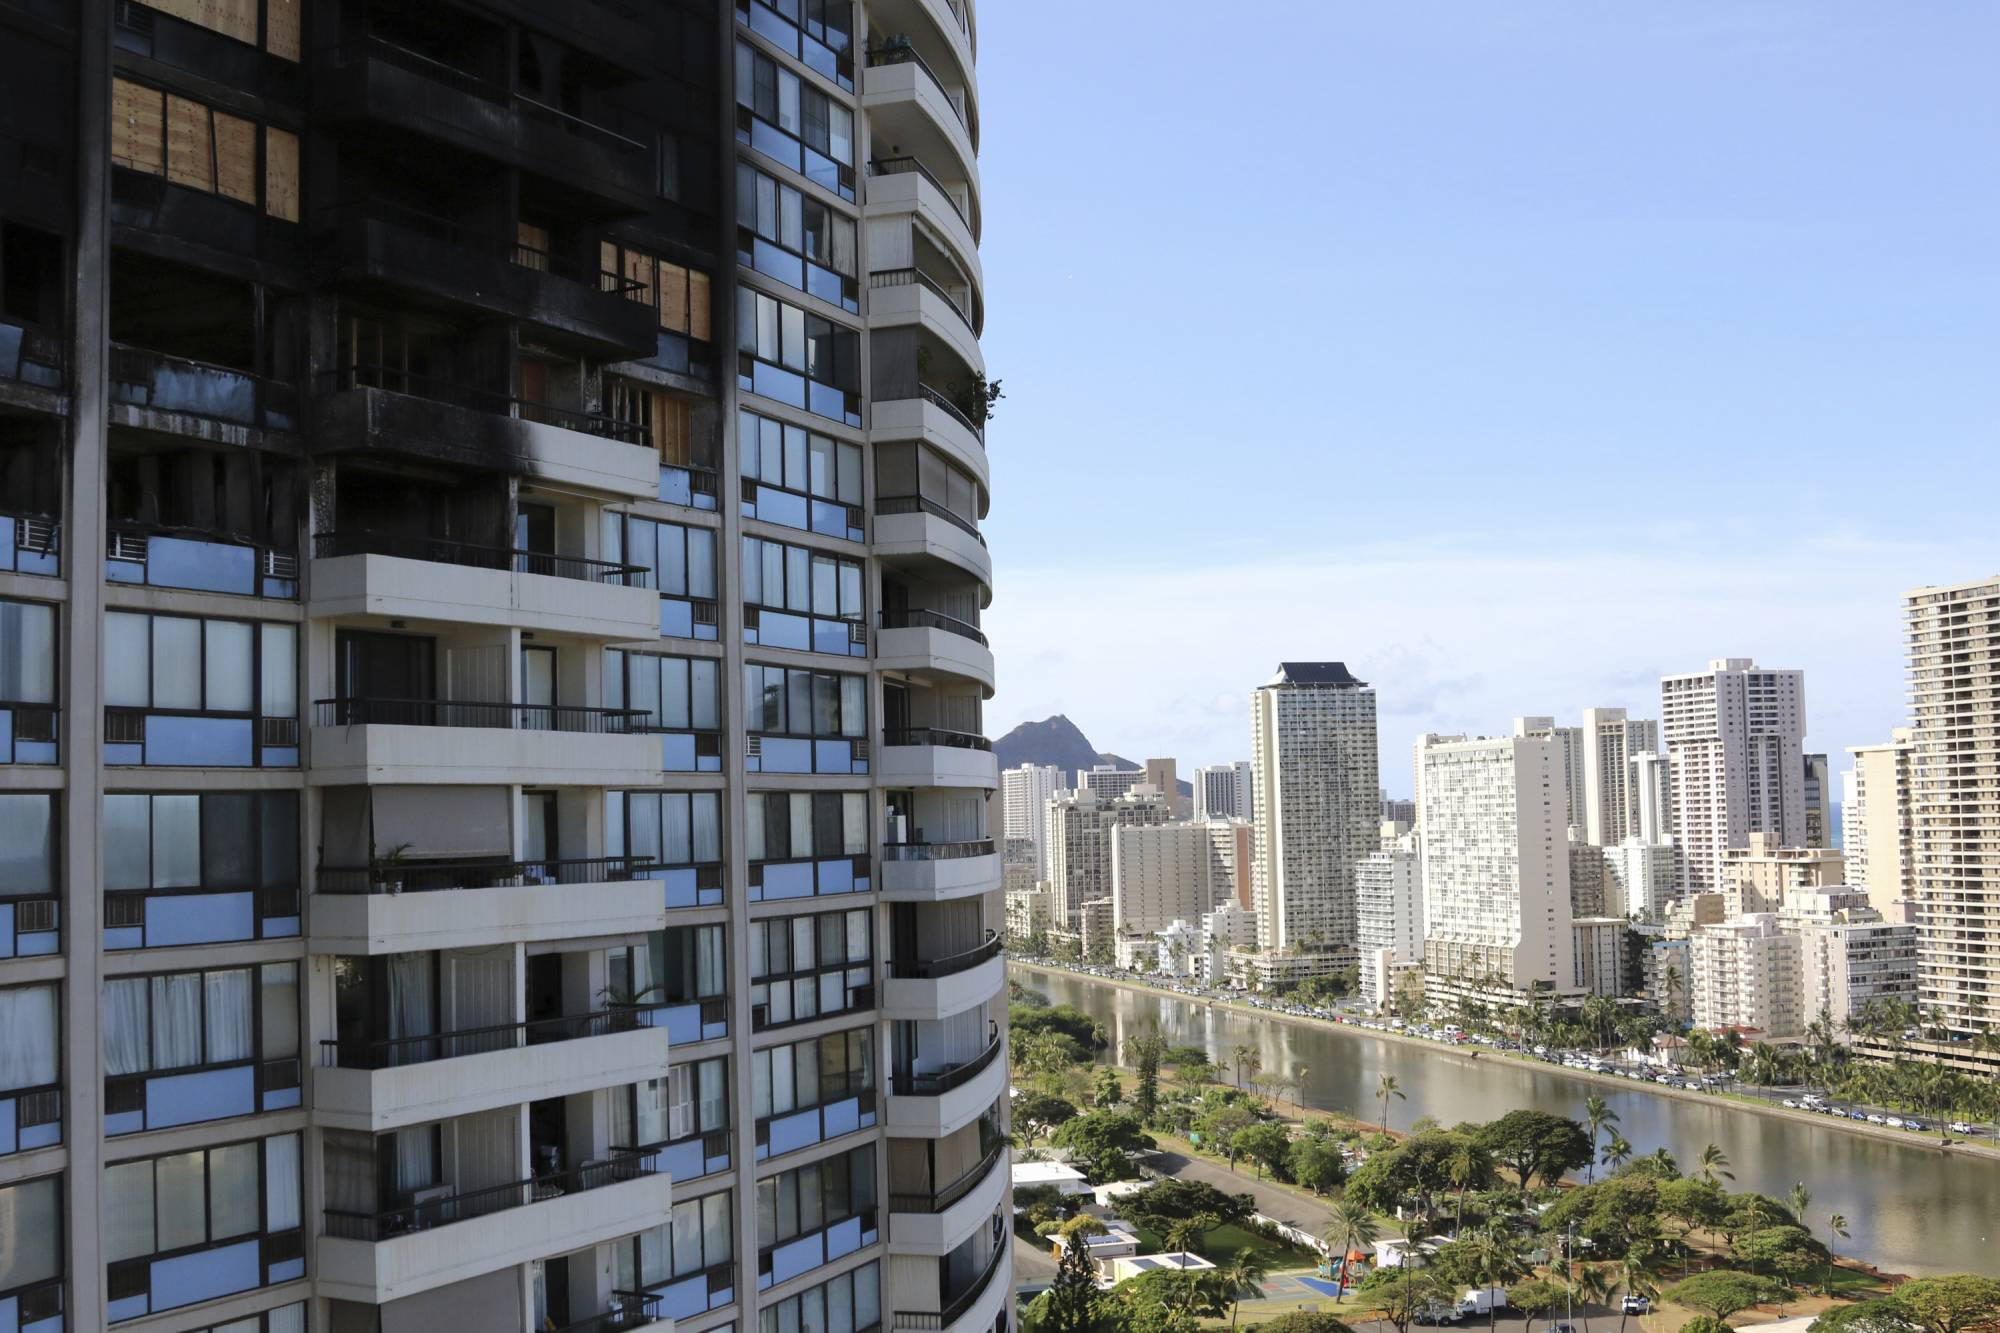 apnewsbreak: honolulu high-rise had outdated fire alarms | wtop